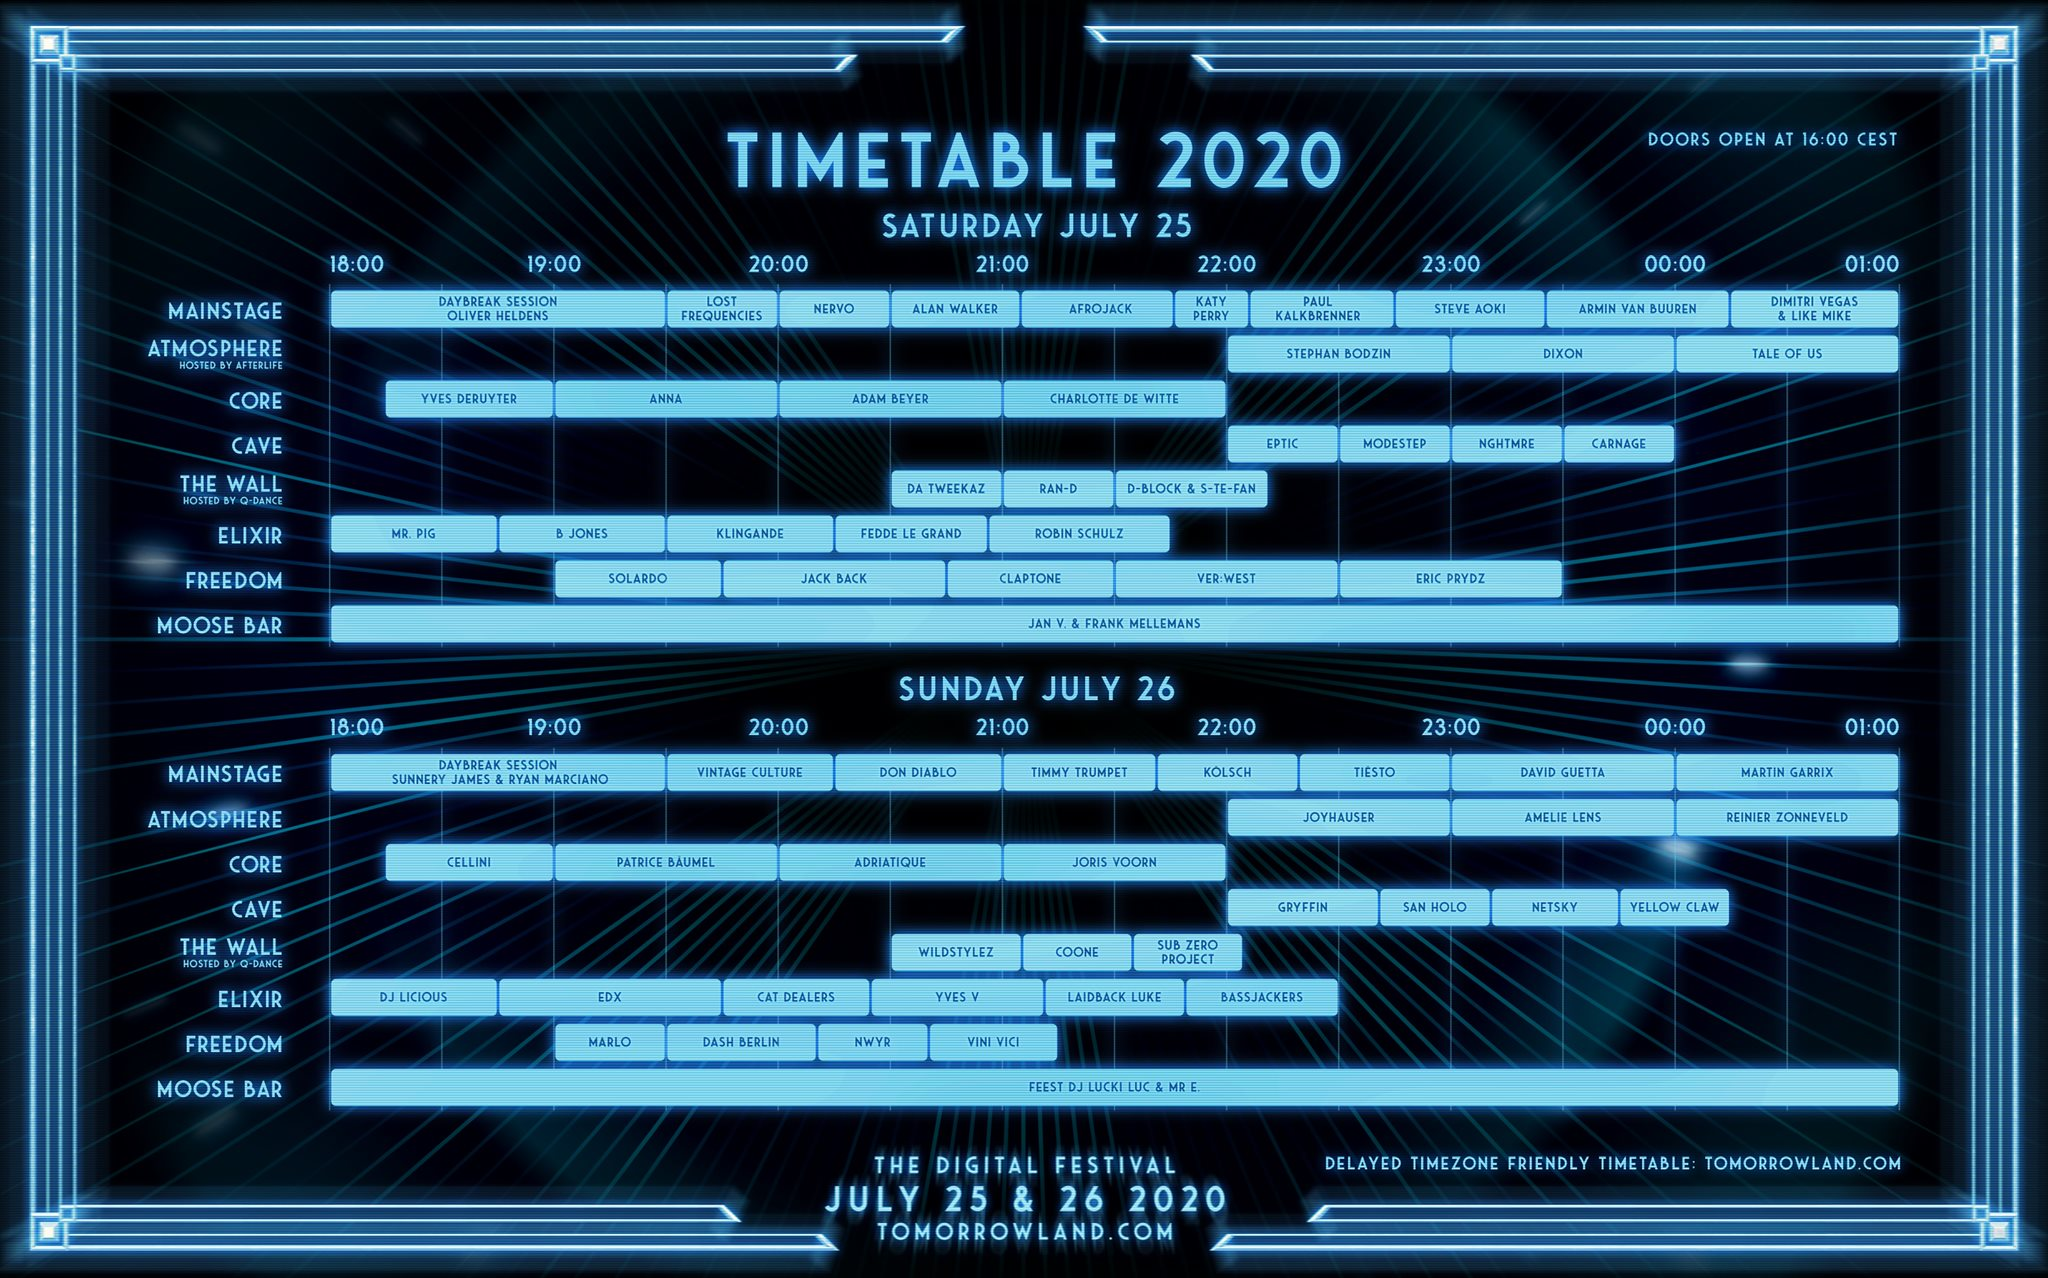 Timetable Tomorrowland